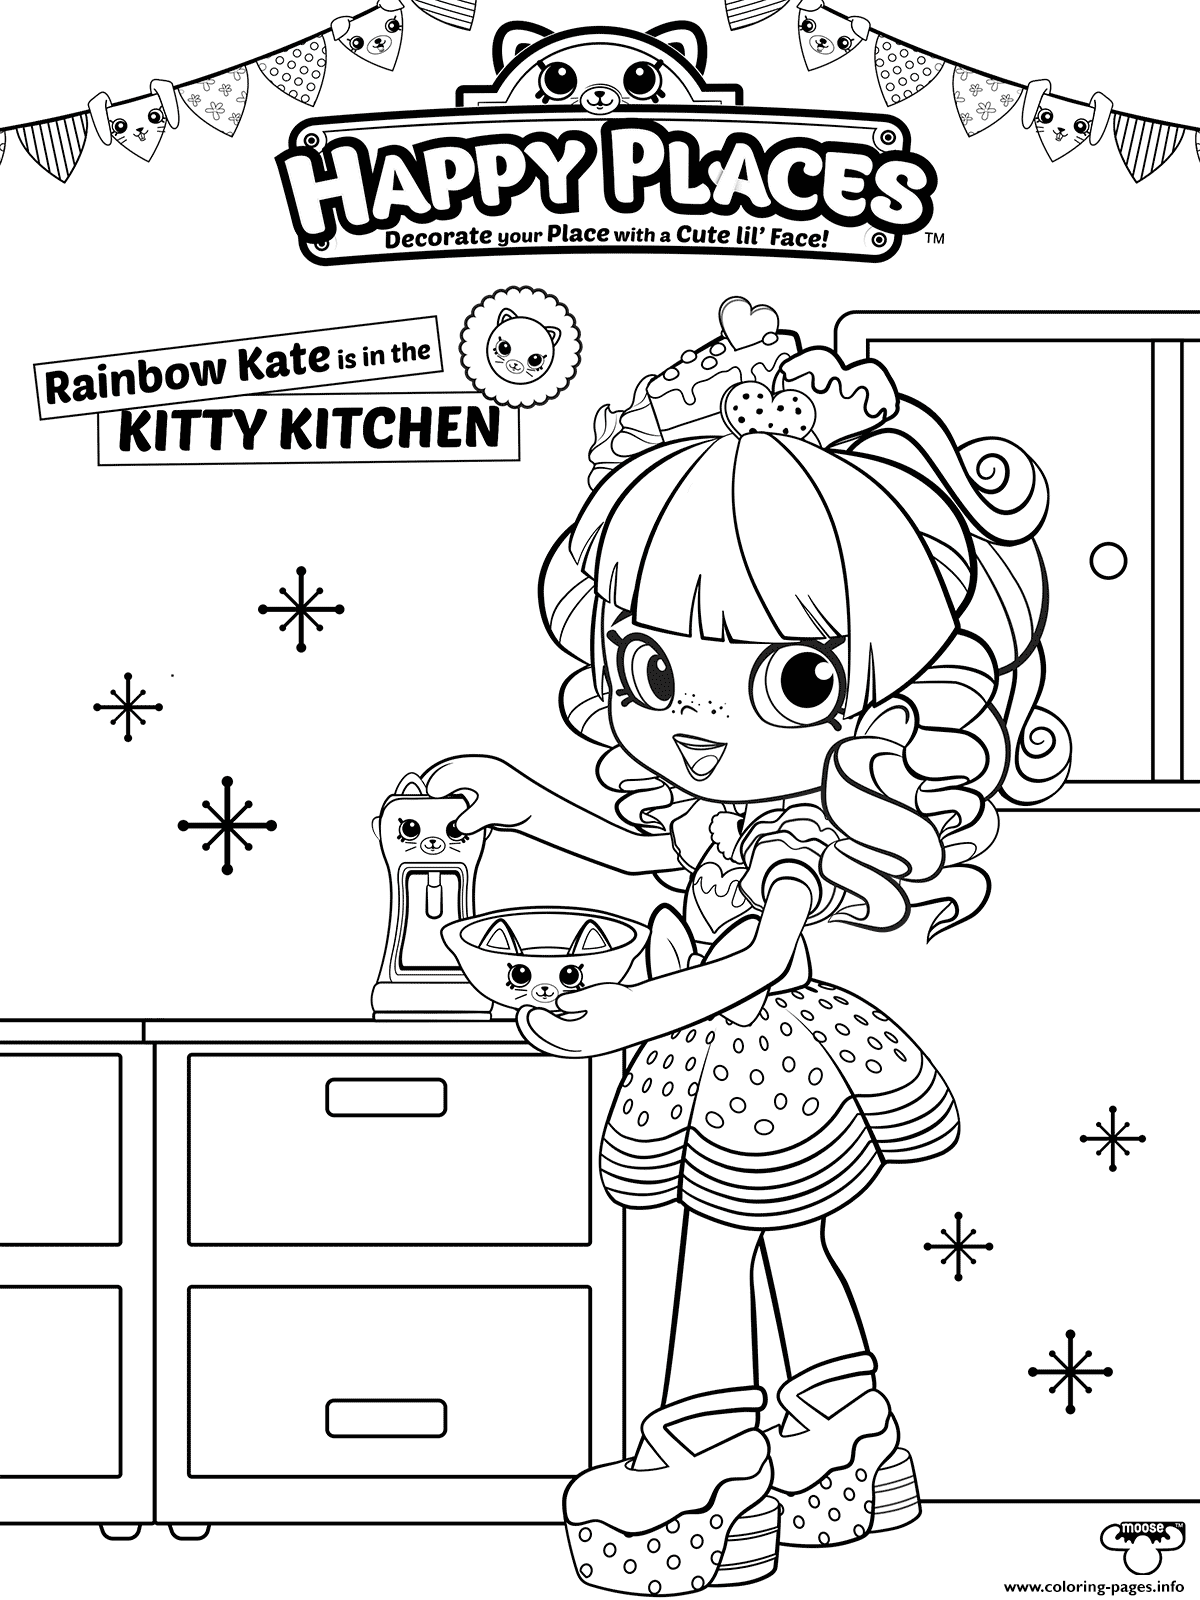 shopkins happy places coloring pages printable